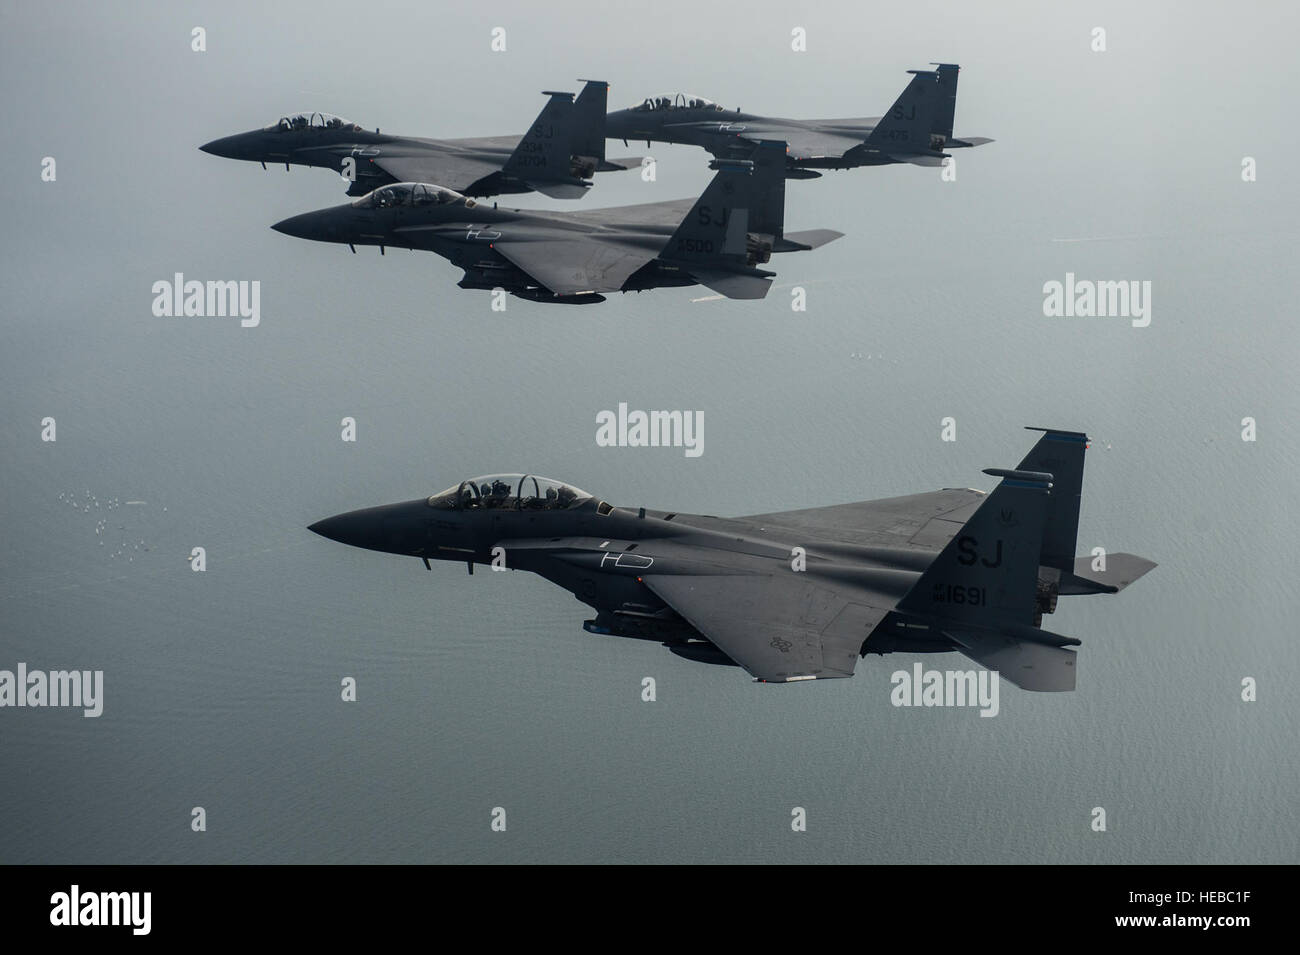 F-15E Strike Eagles assigned to the 334th Fighter Squadron at Seymour Johnson Air Force Base, N.C., fly over New - Stock Image